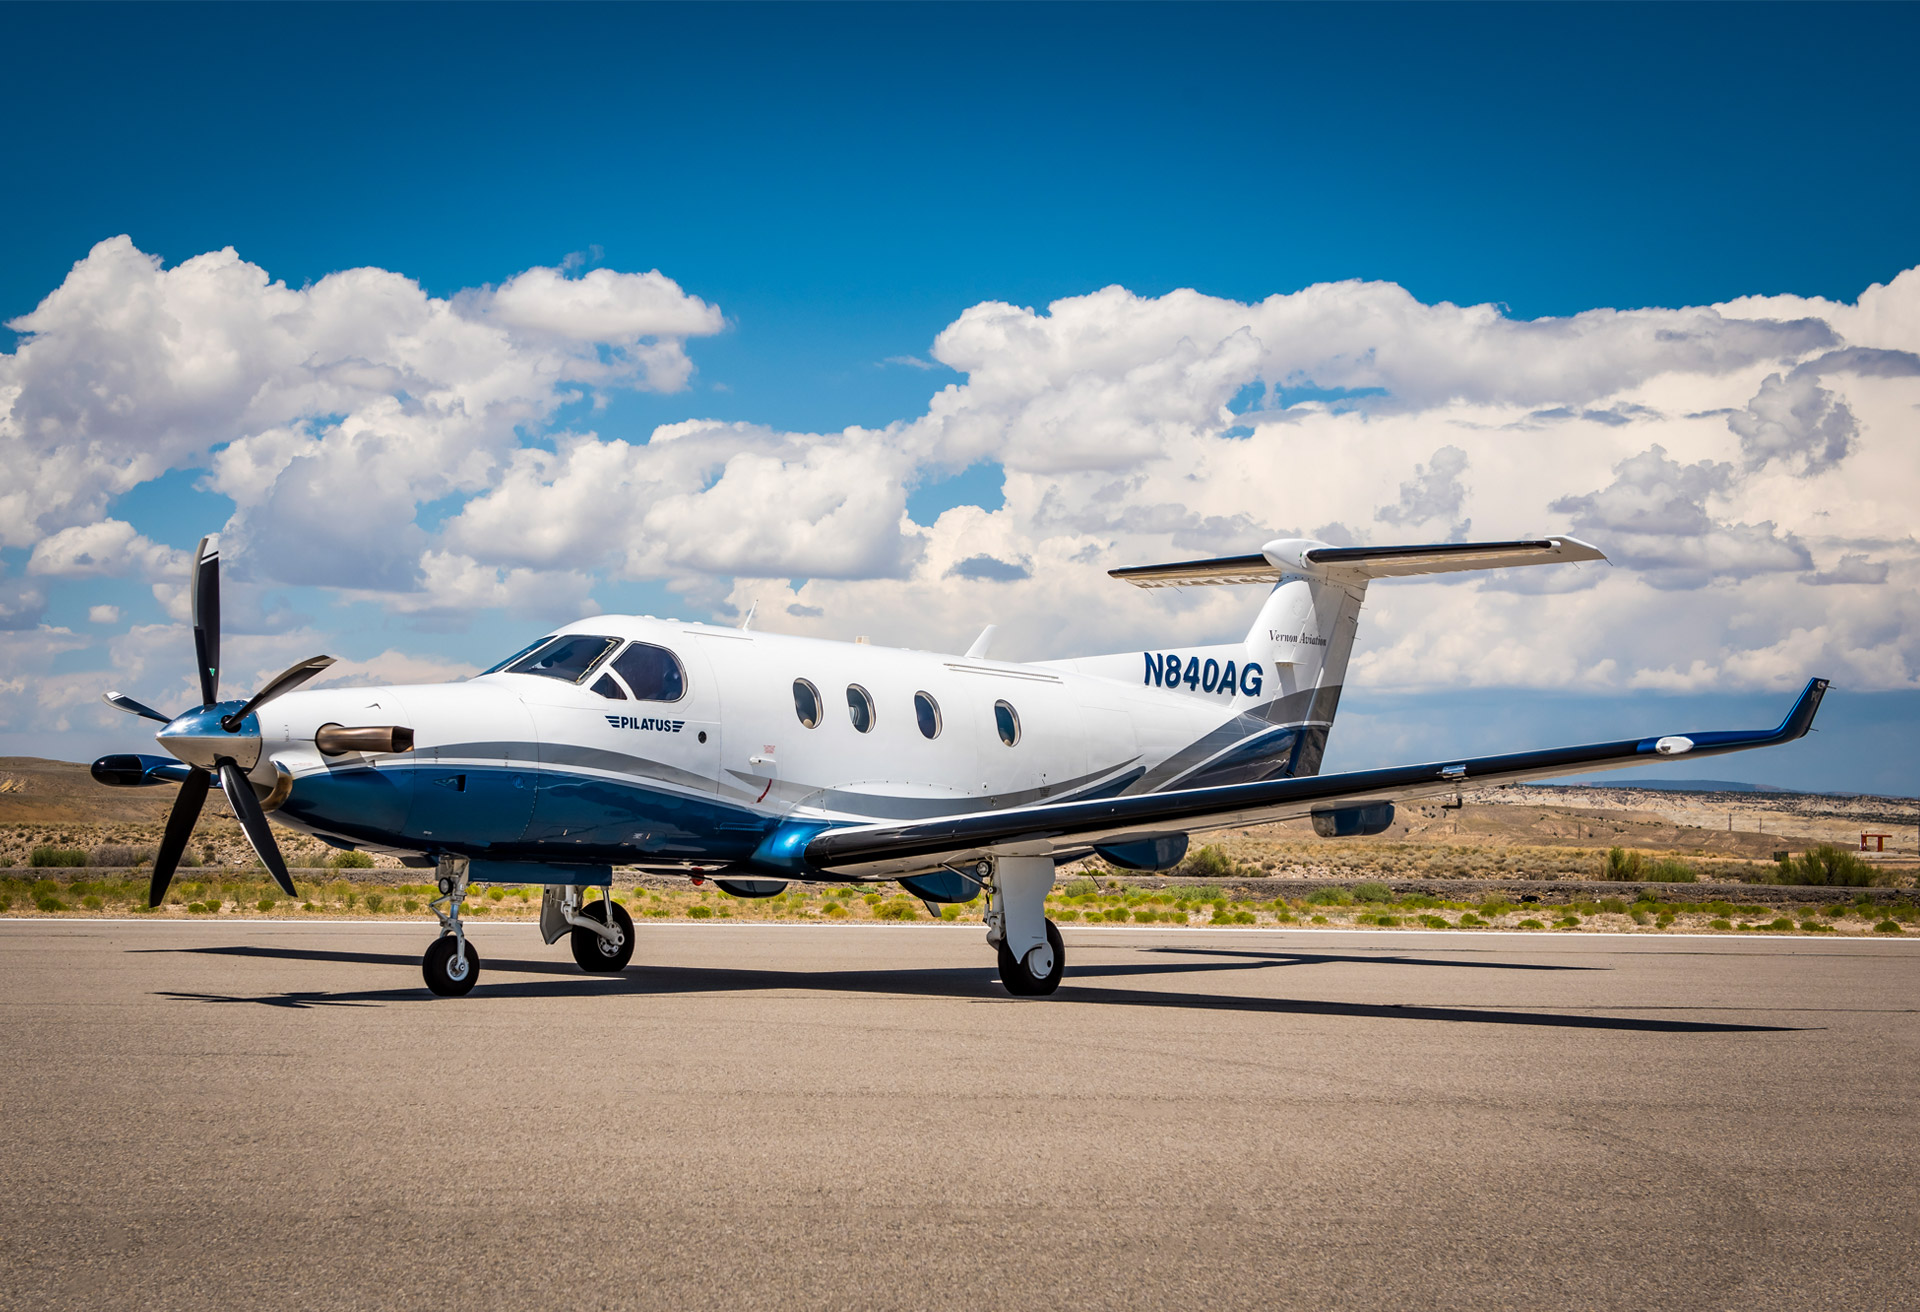 ALPHA GOLF - 1999 PILATUS AIRCRAFT LTD PC-12/45Based in Scottsdale, AZSeats up to 9 passengersTravels up to 1,500 miles nonstop